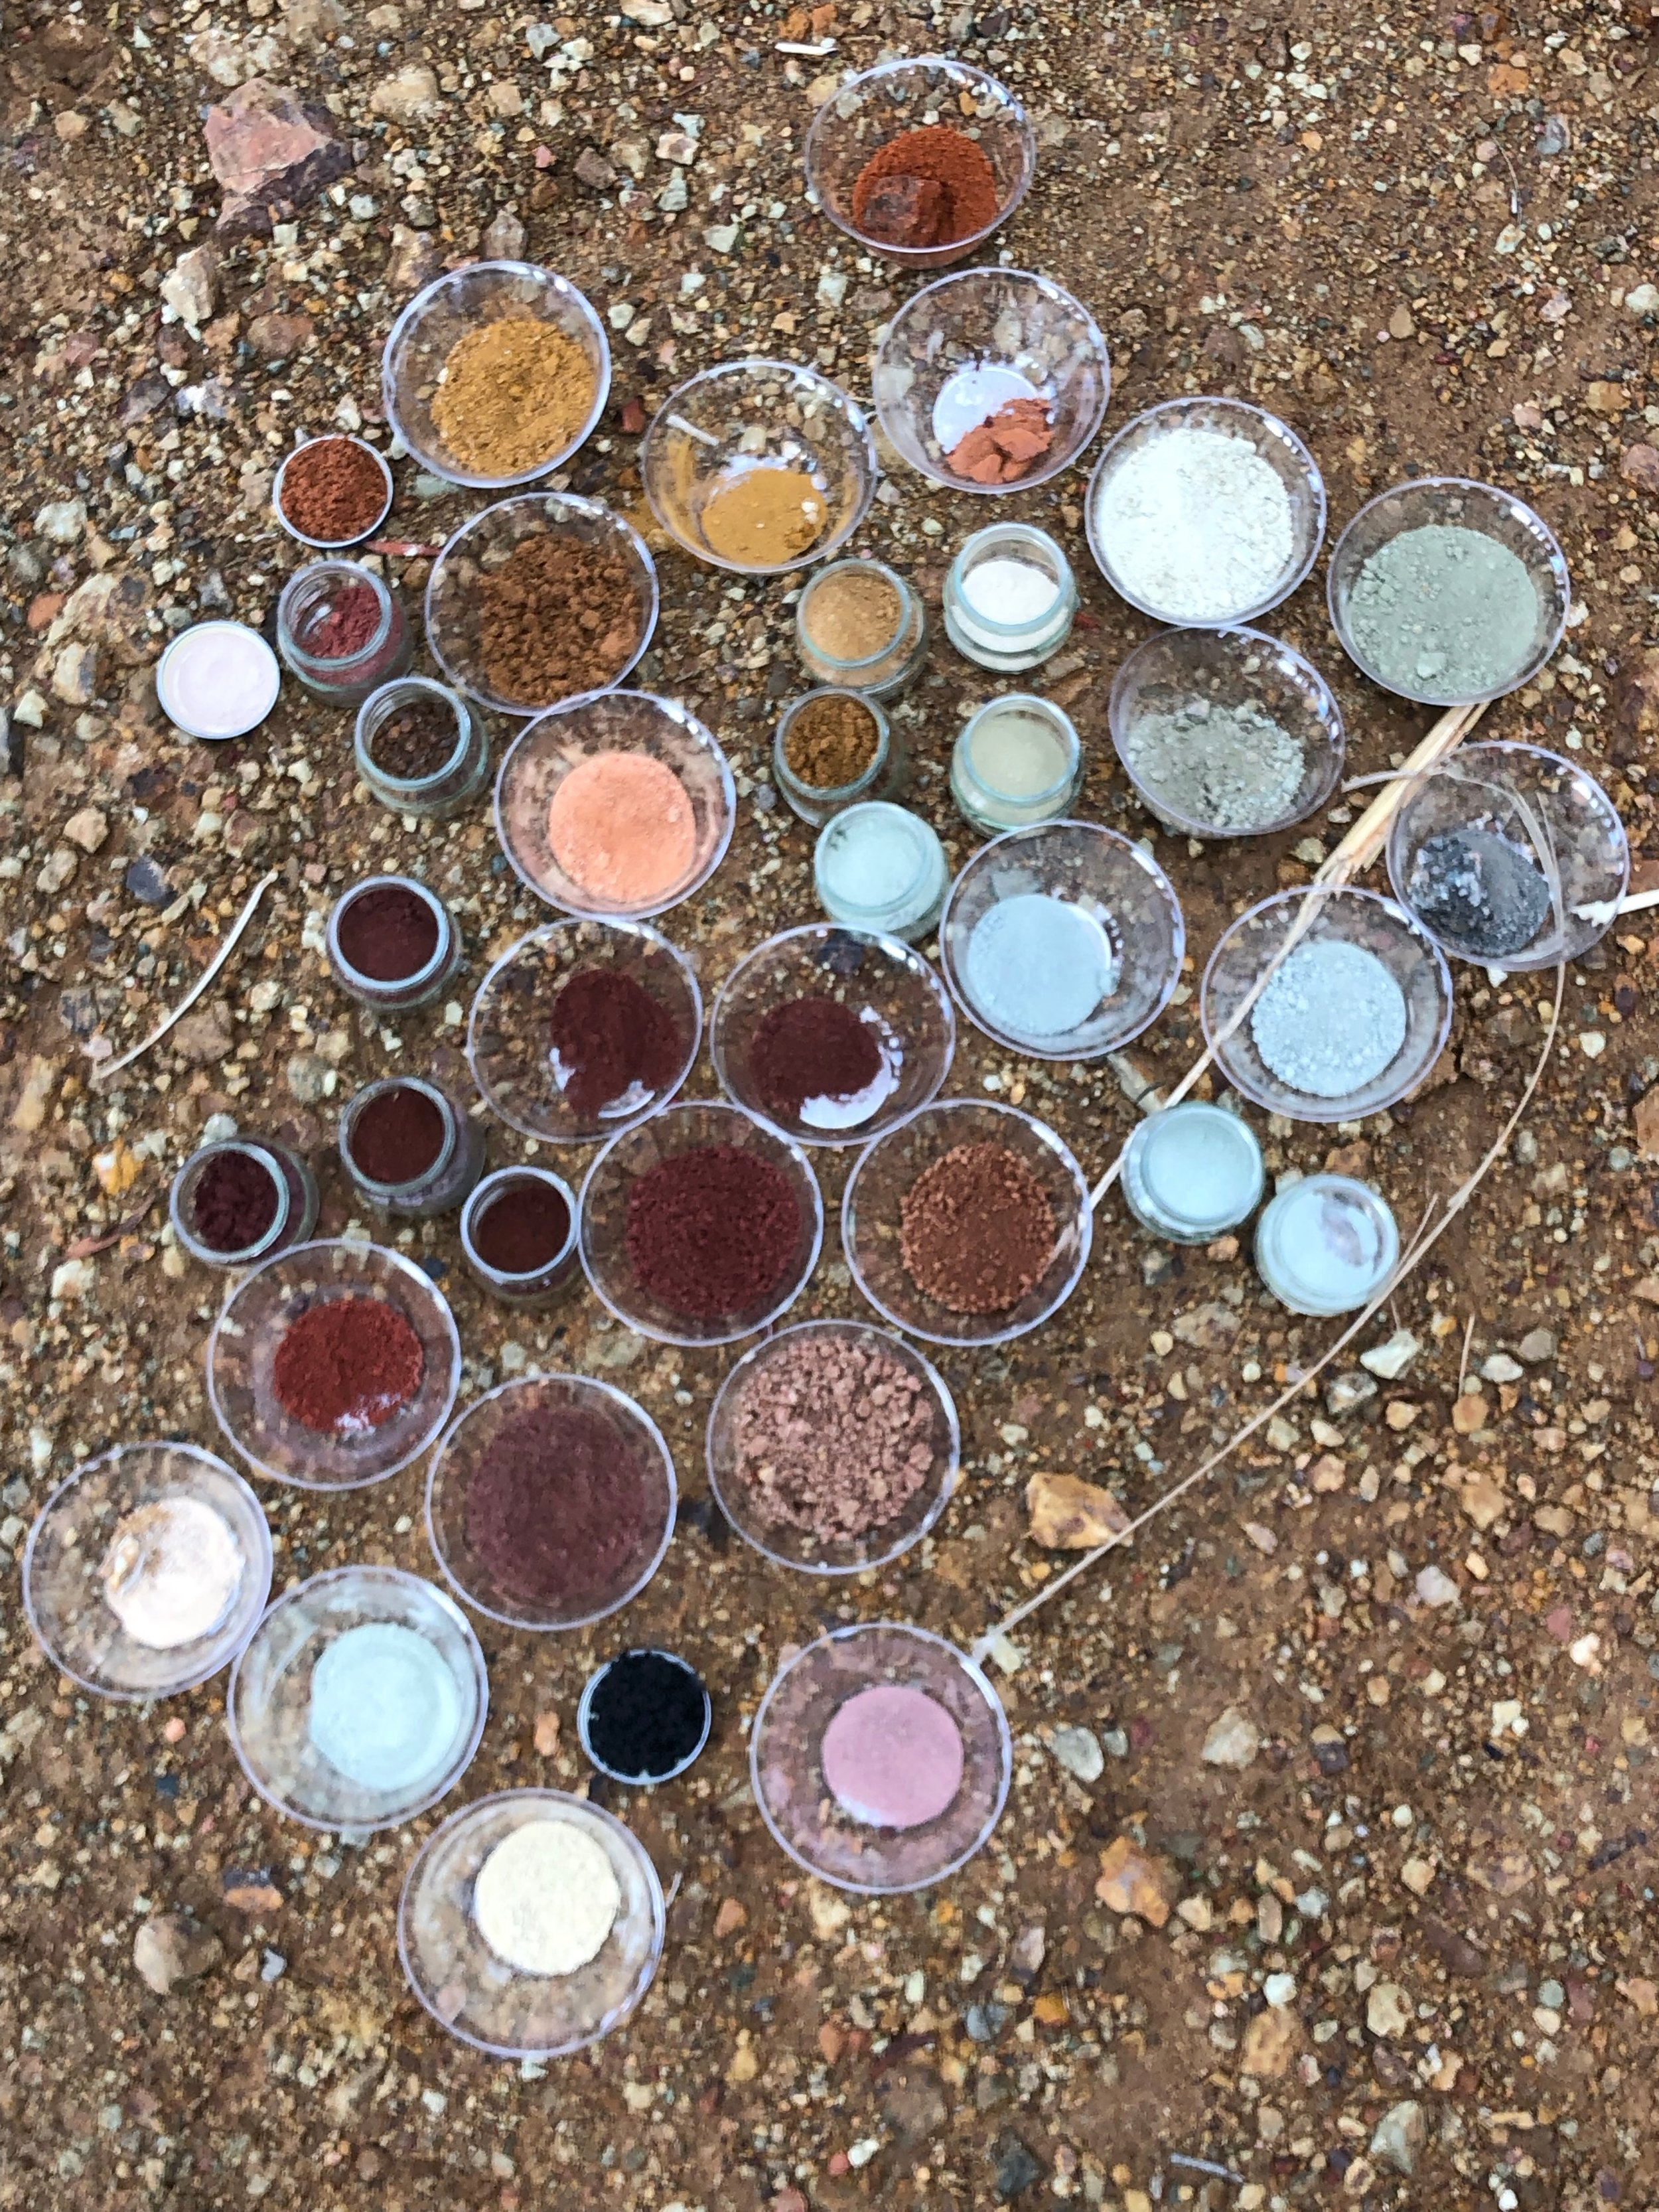 OCHRE SPECTRUM - After pulverizing and sieving our rocks, we took a pigment group photo, documenting the hidden rainbow in our backyard.